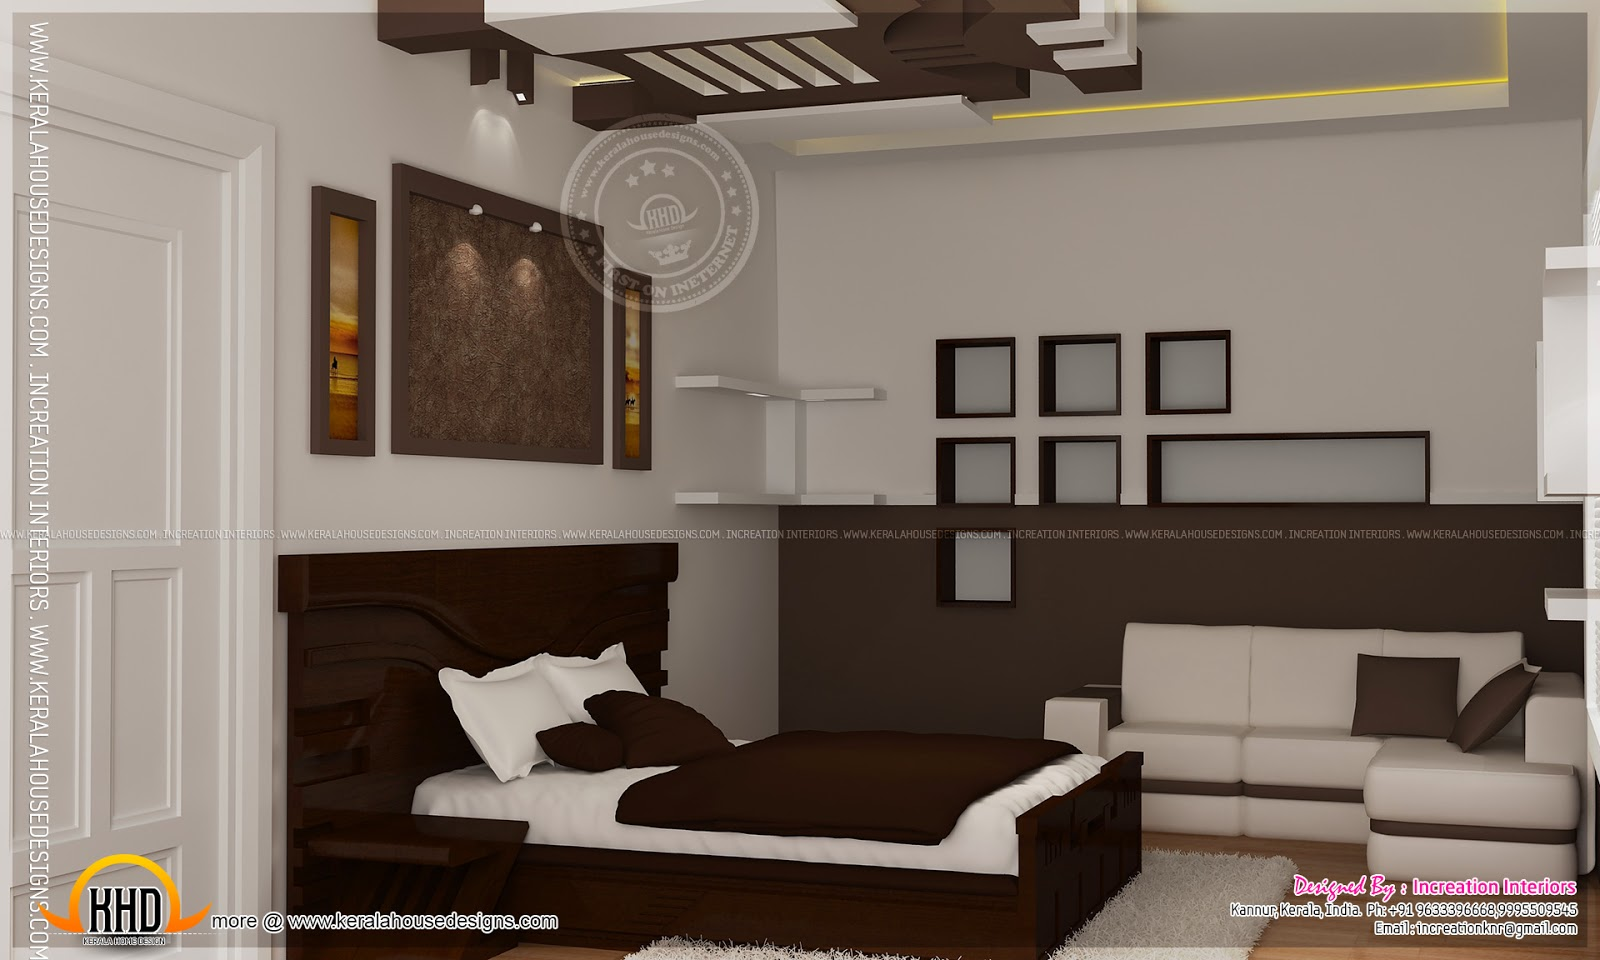 Kerala home design interior bedroom - Bedroom Interior Bedroom Interior